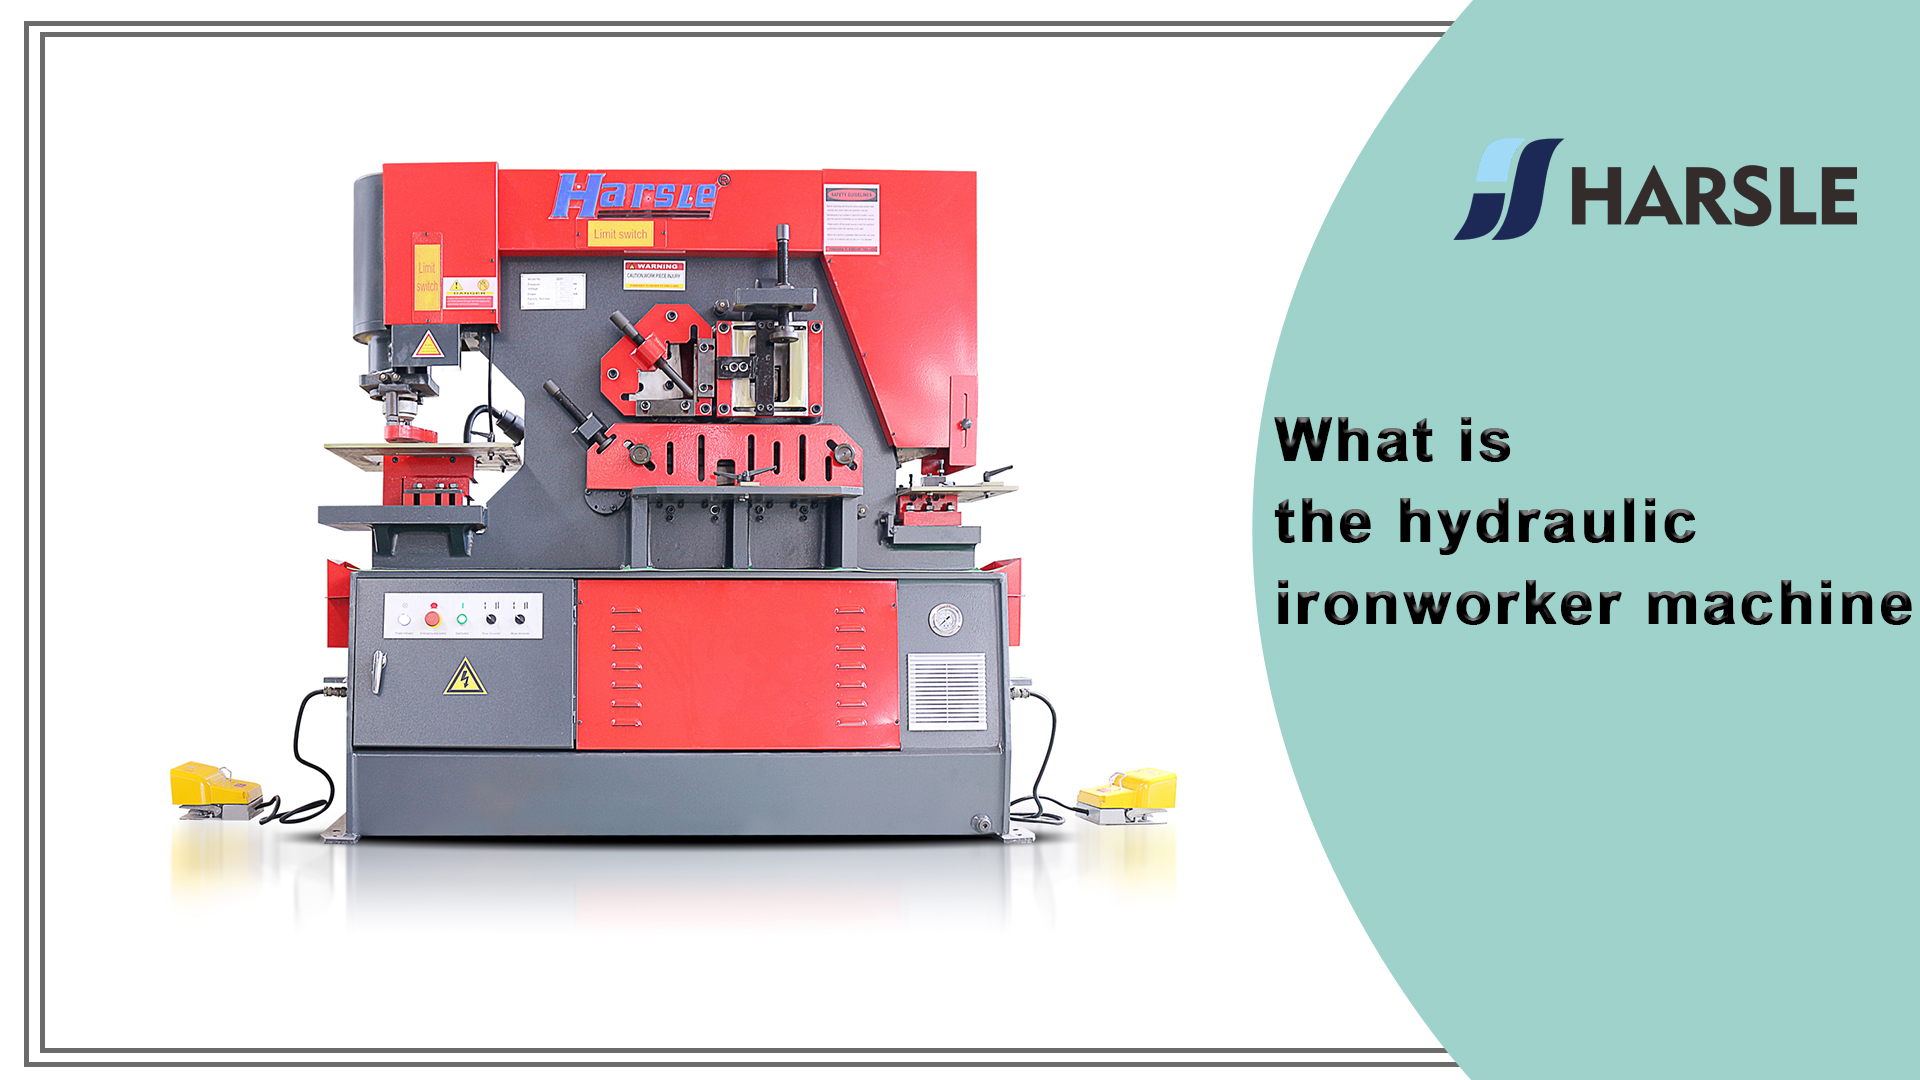 What is the hydraulic ironworker machine